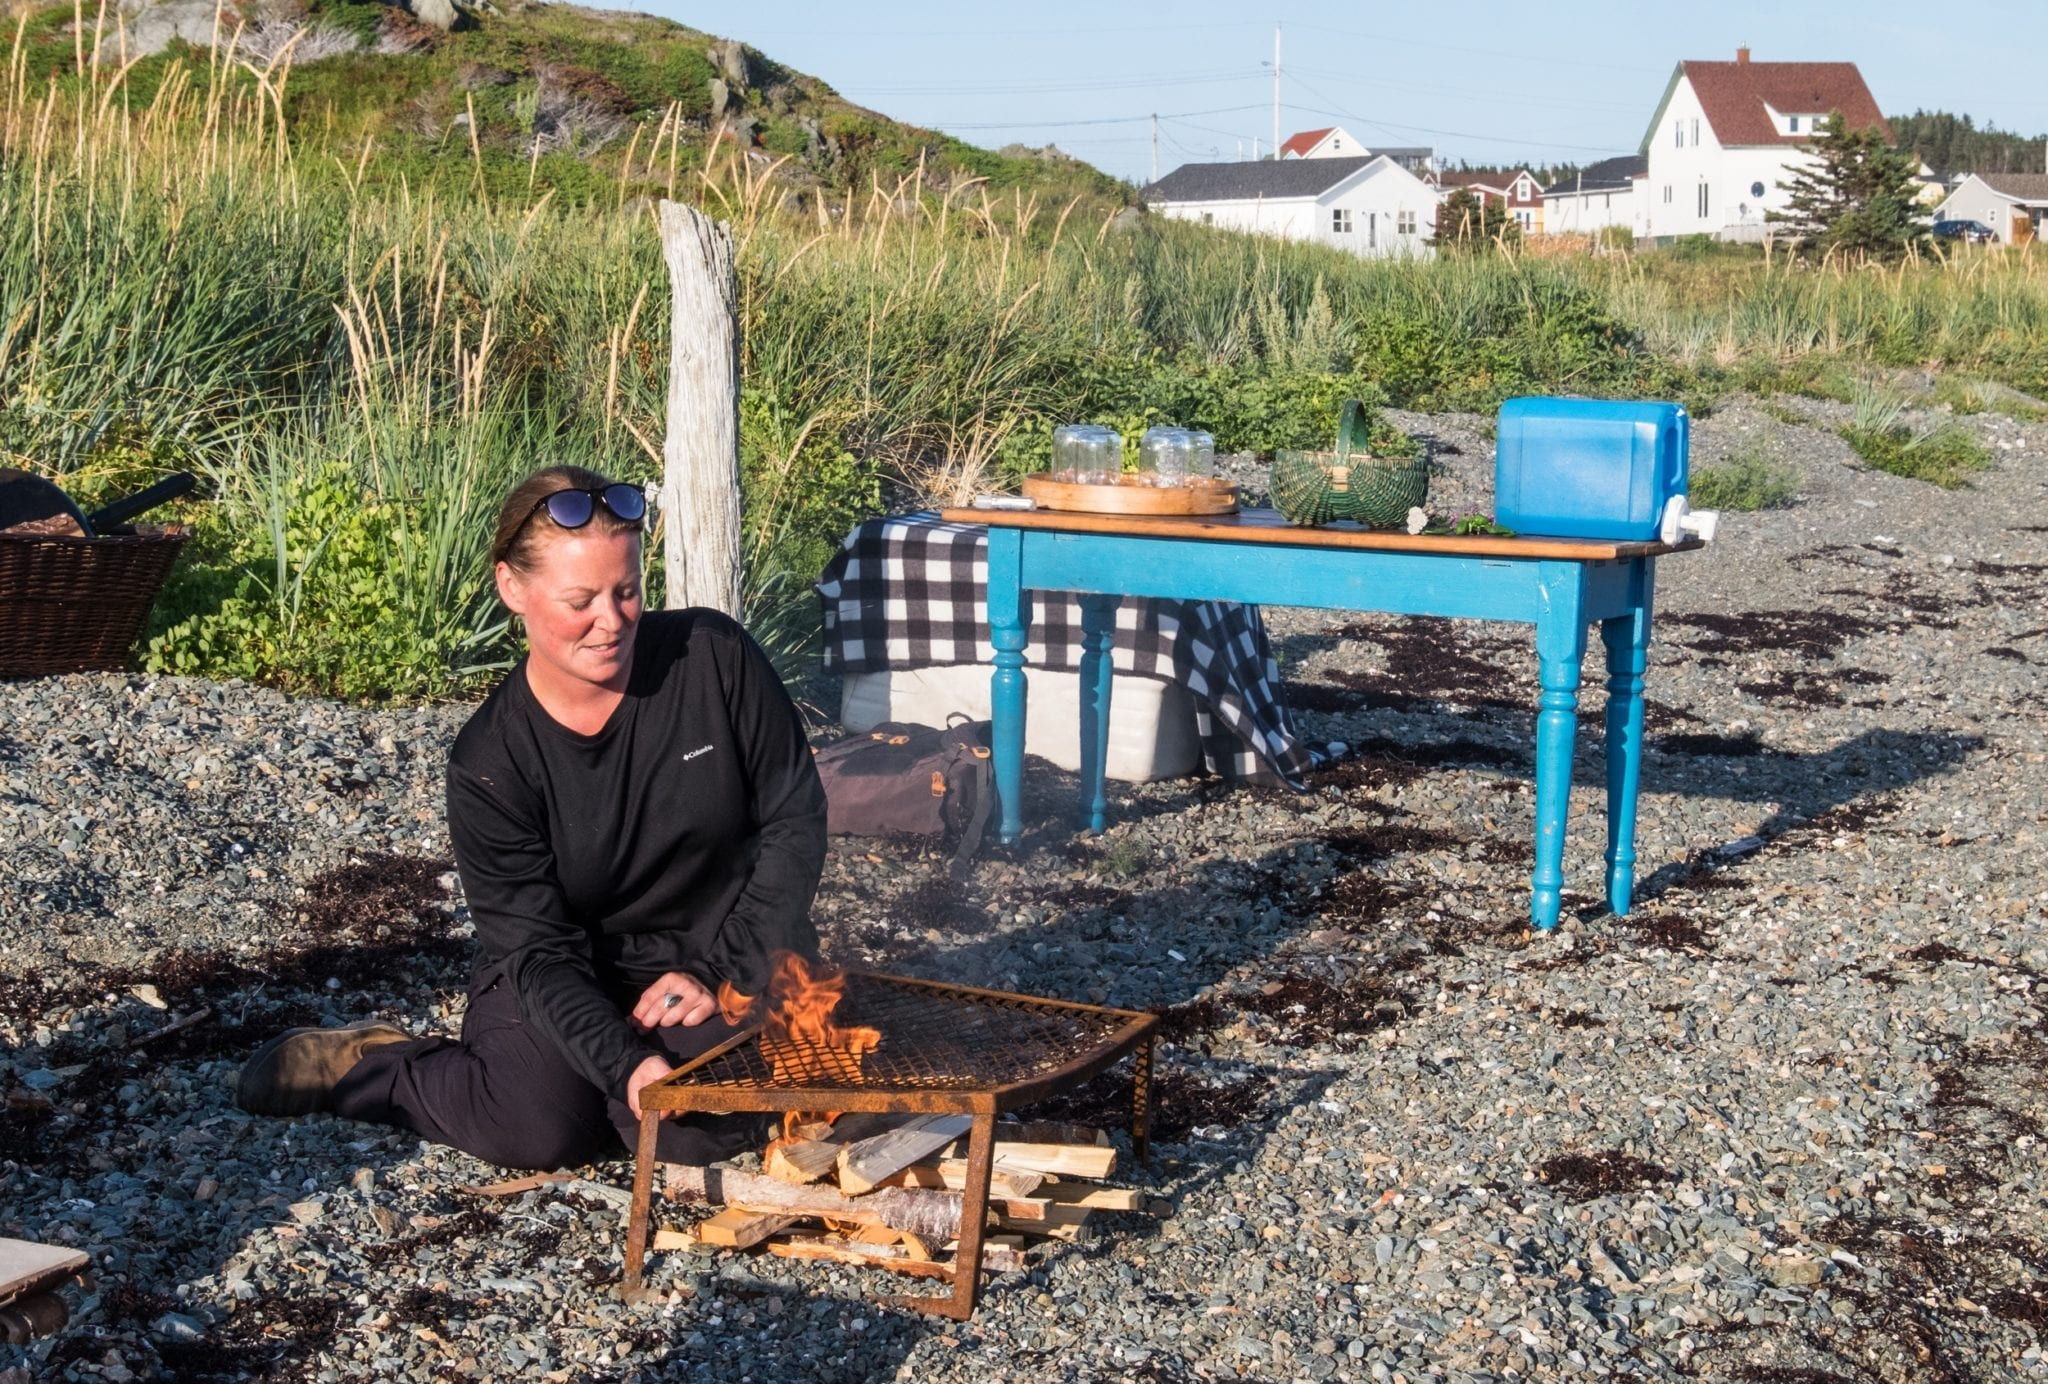 Chef Crystal tends a campfire on the beach, with cottages in the background.